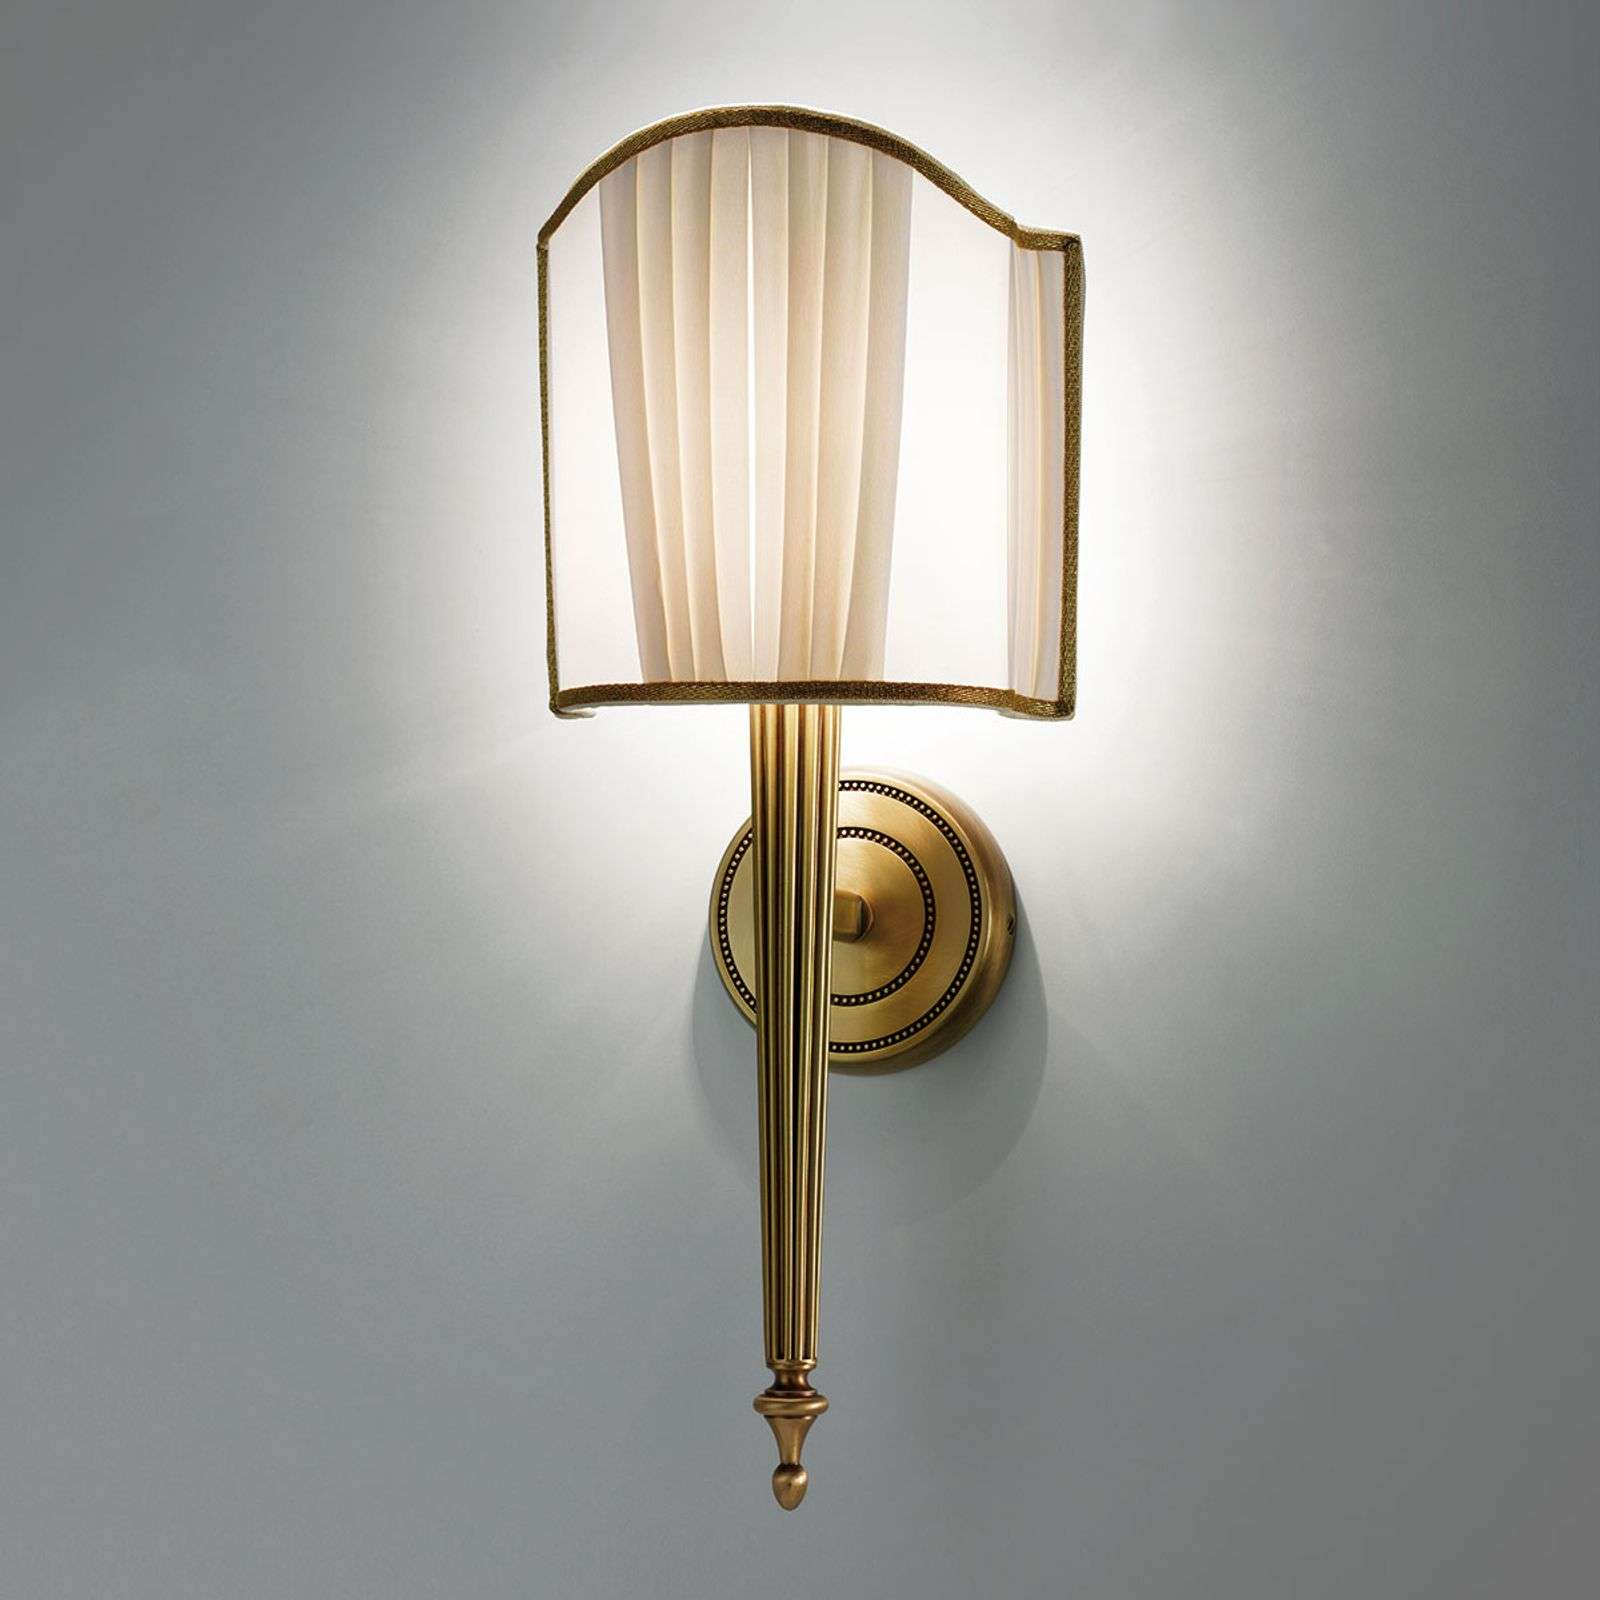 Wandlamp Belle Epoque in oud messing